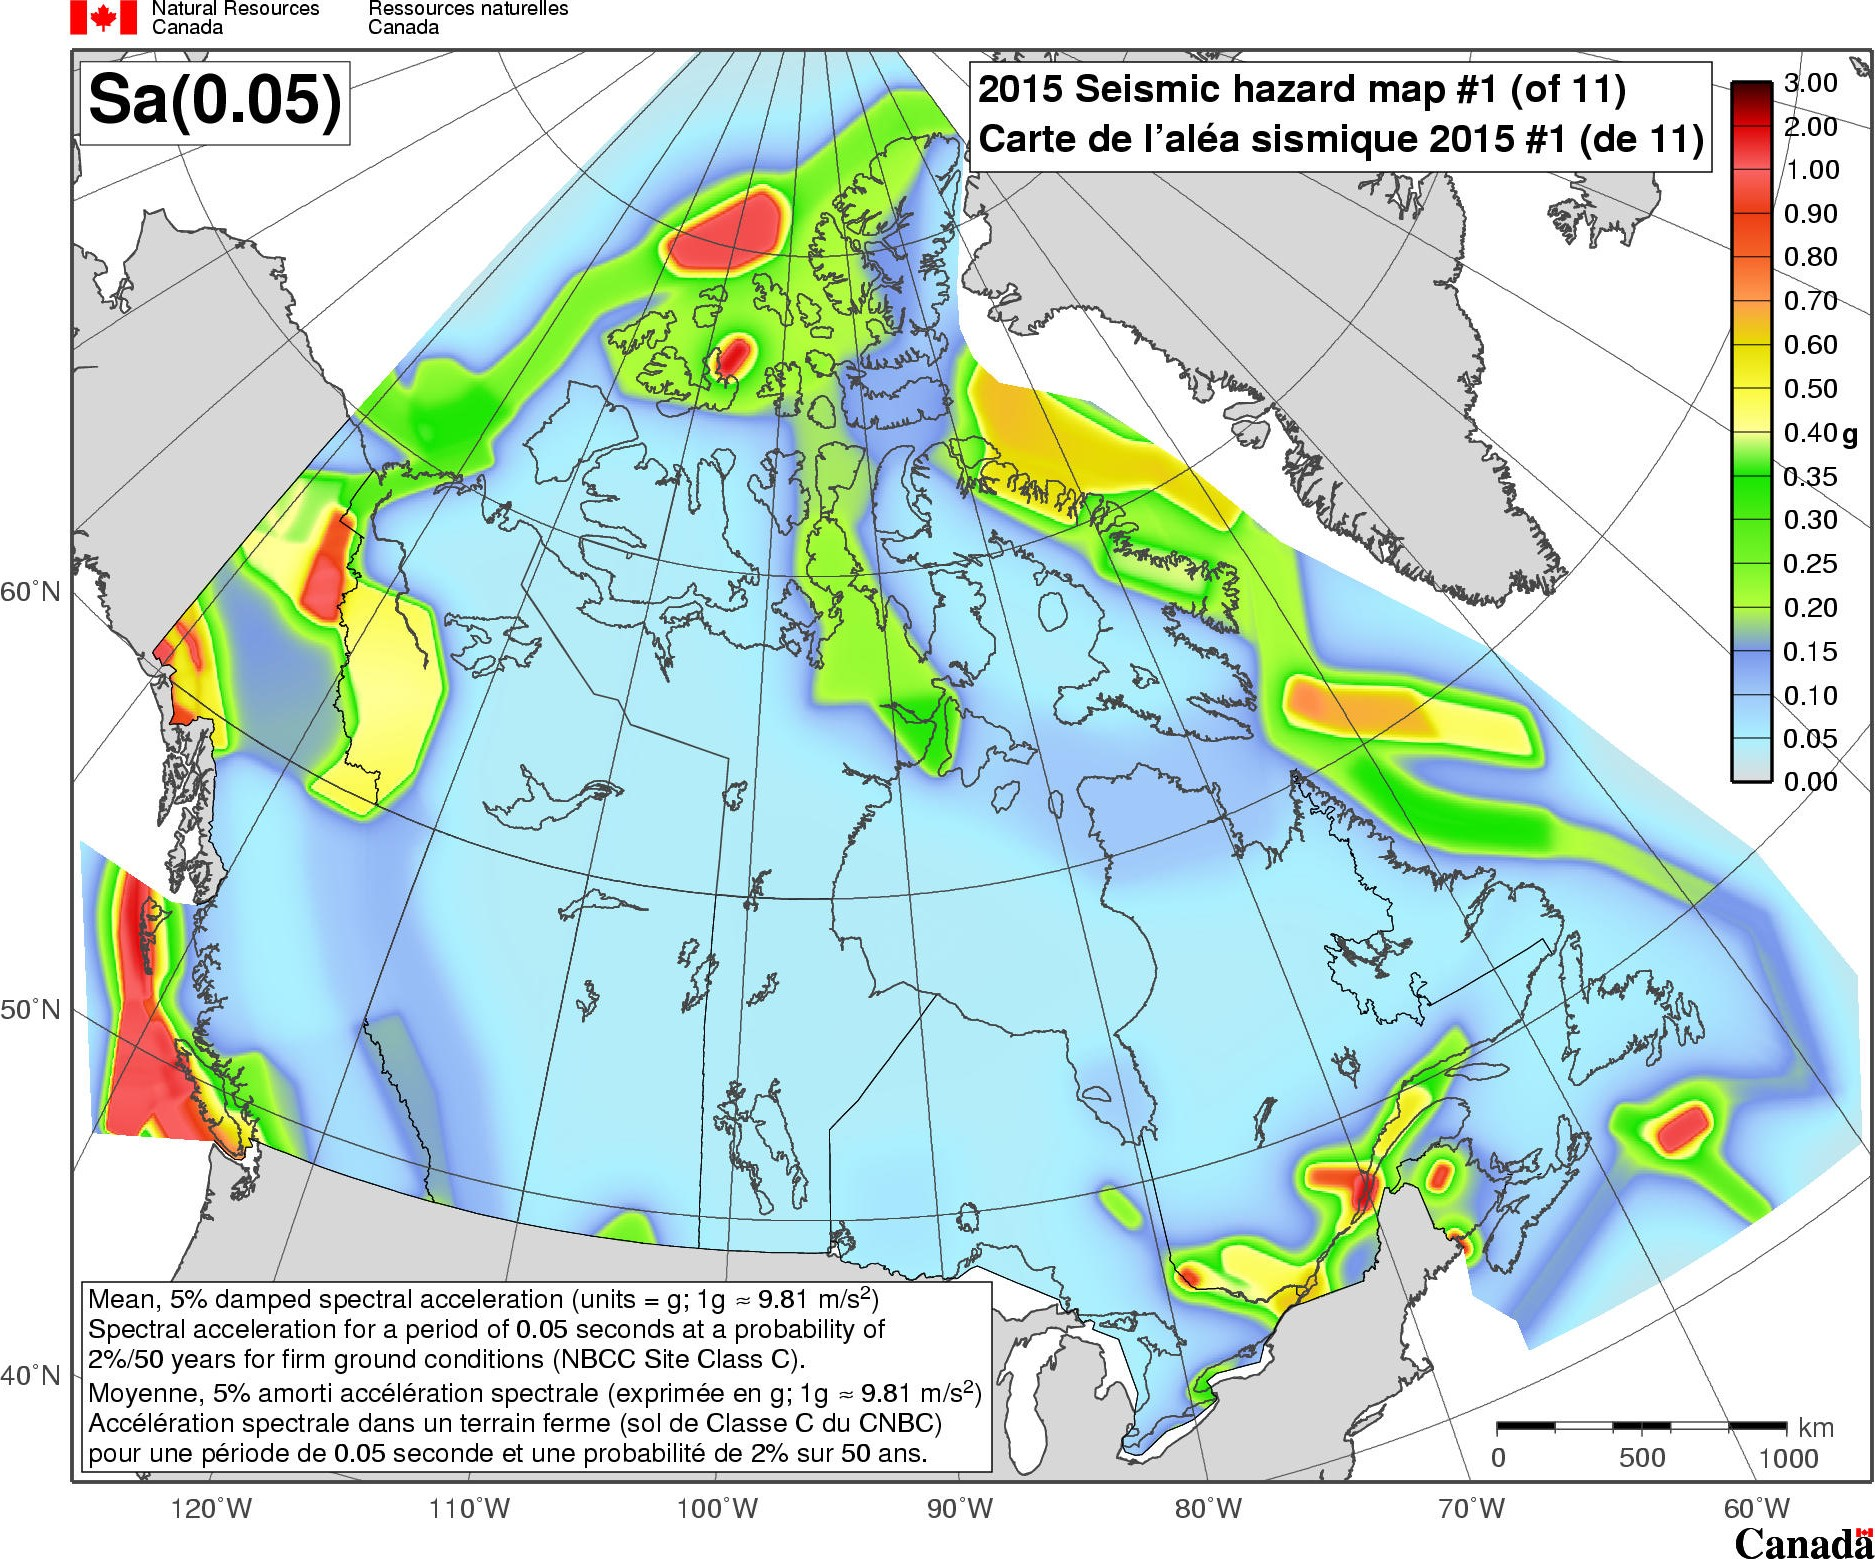 Canada Natural Resources Earthquake Map 2015 National Building Code of Canada seismic hazard maps